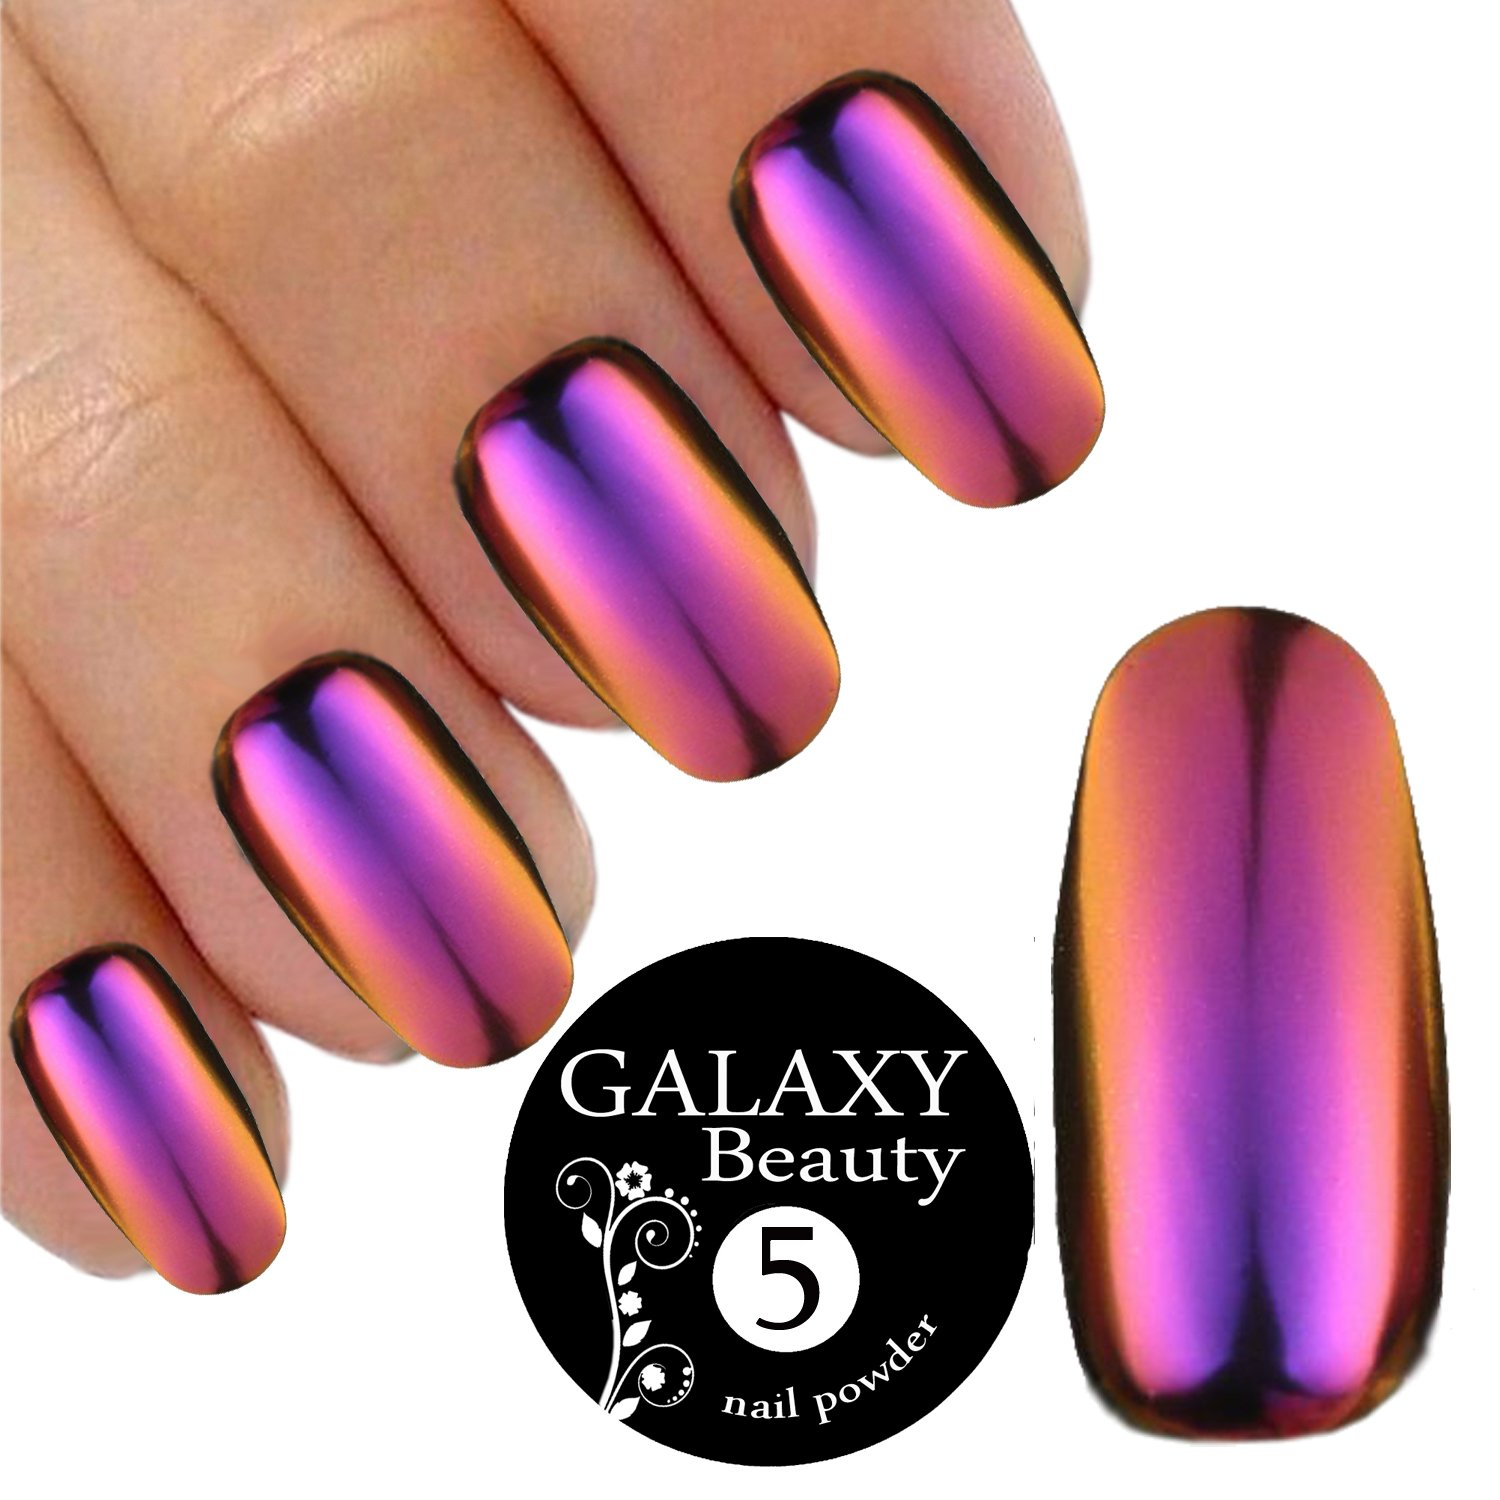 Chameleon Mirror Chrome Nail Shifting Powder Multi Colour Changing Glitter Purple Gold Effect 1 G ATA